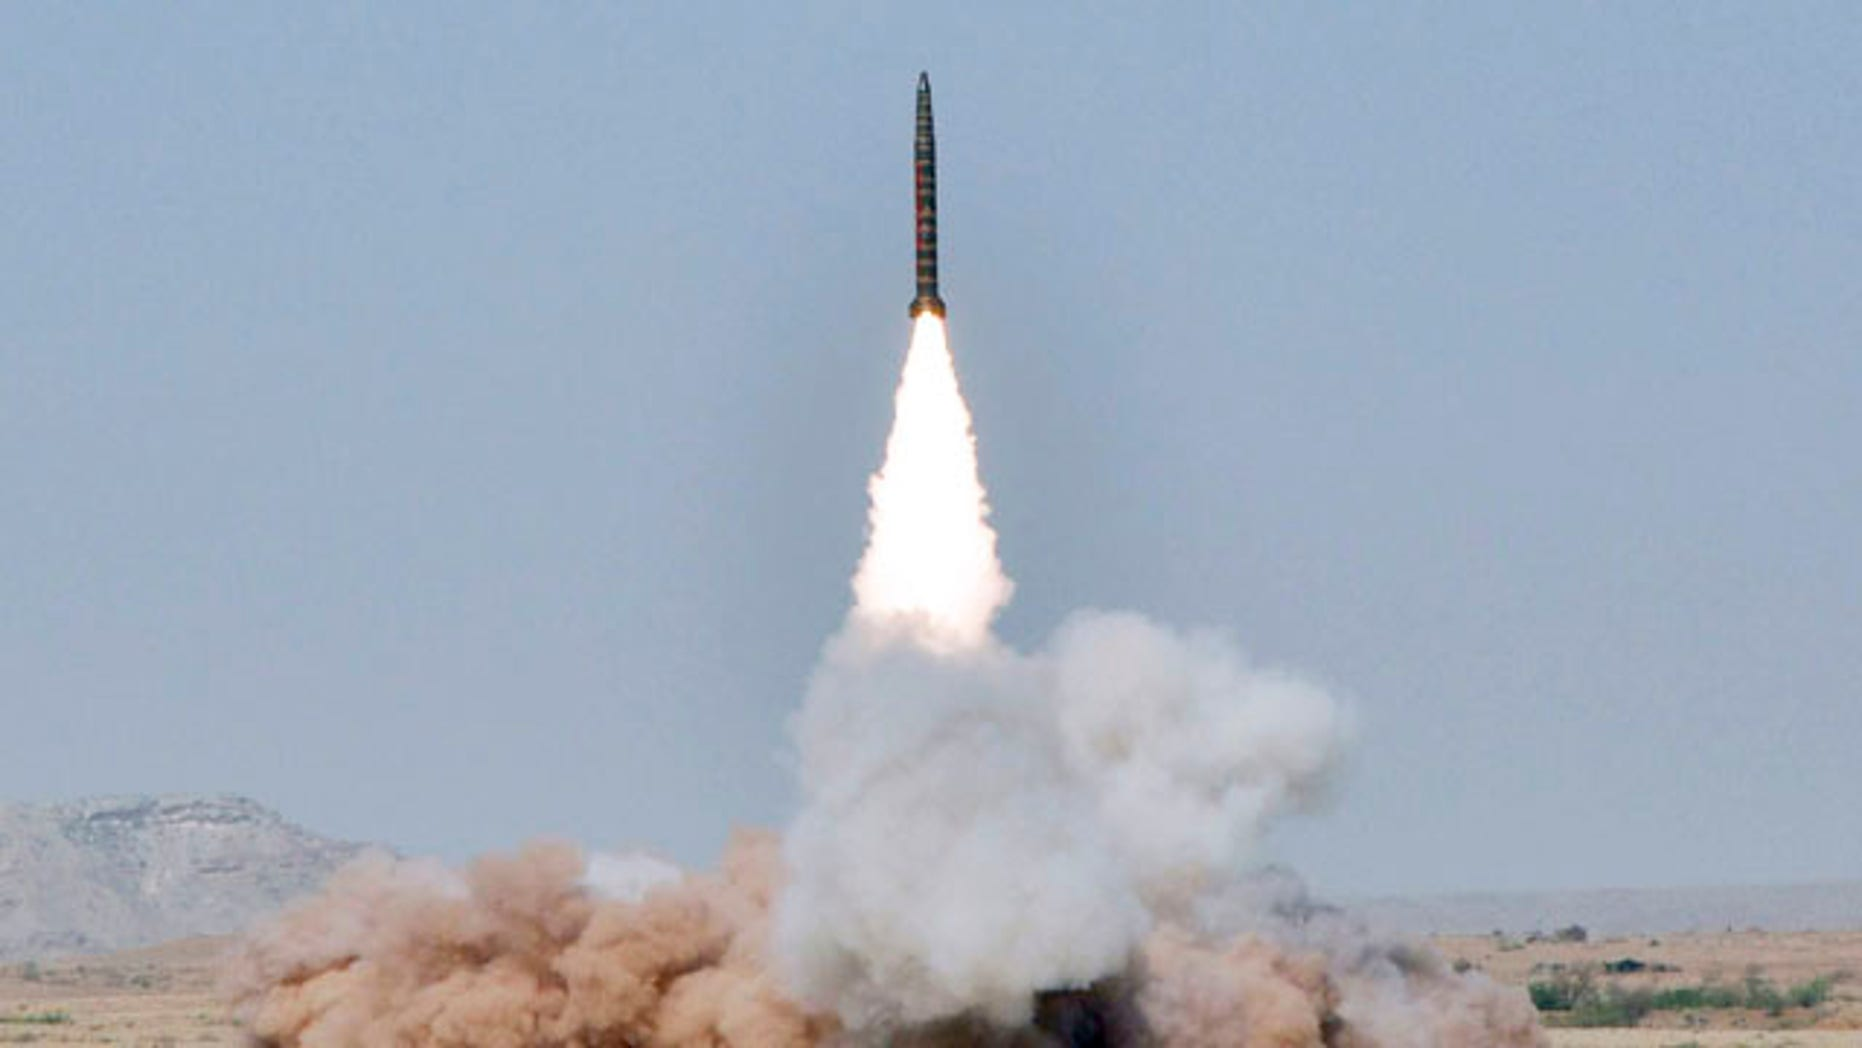 May 8: In this handout photo released by Pakistan's Inter Services Public Relations, a Ghaznavi missile is launched from an undisclosed location in Pakistan.